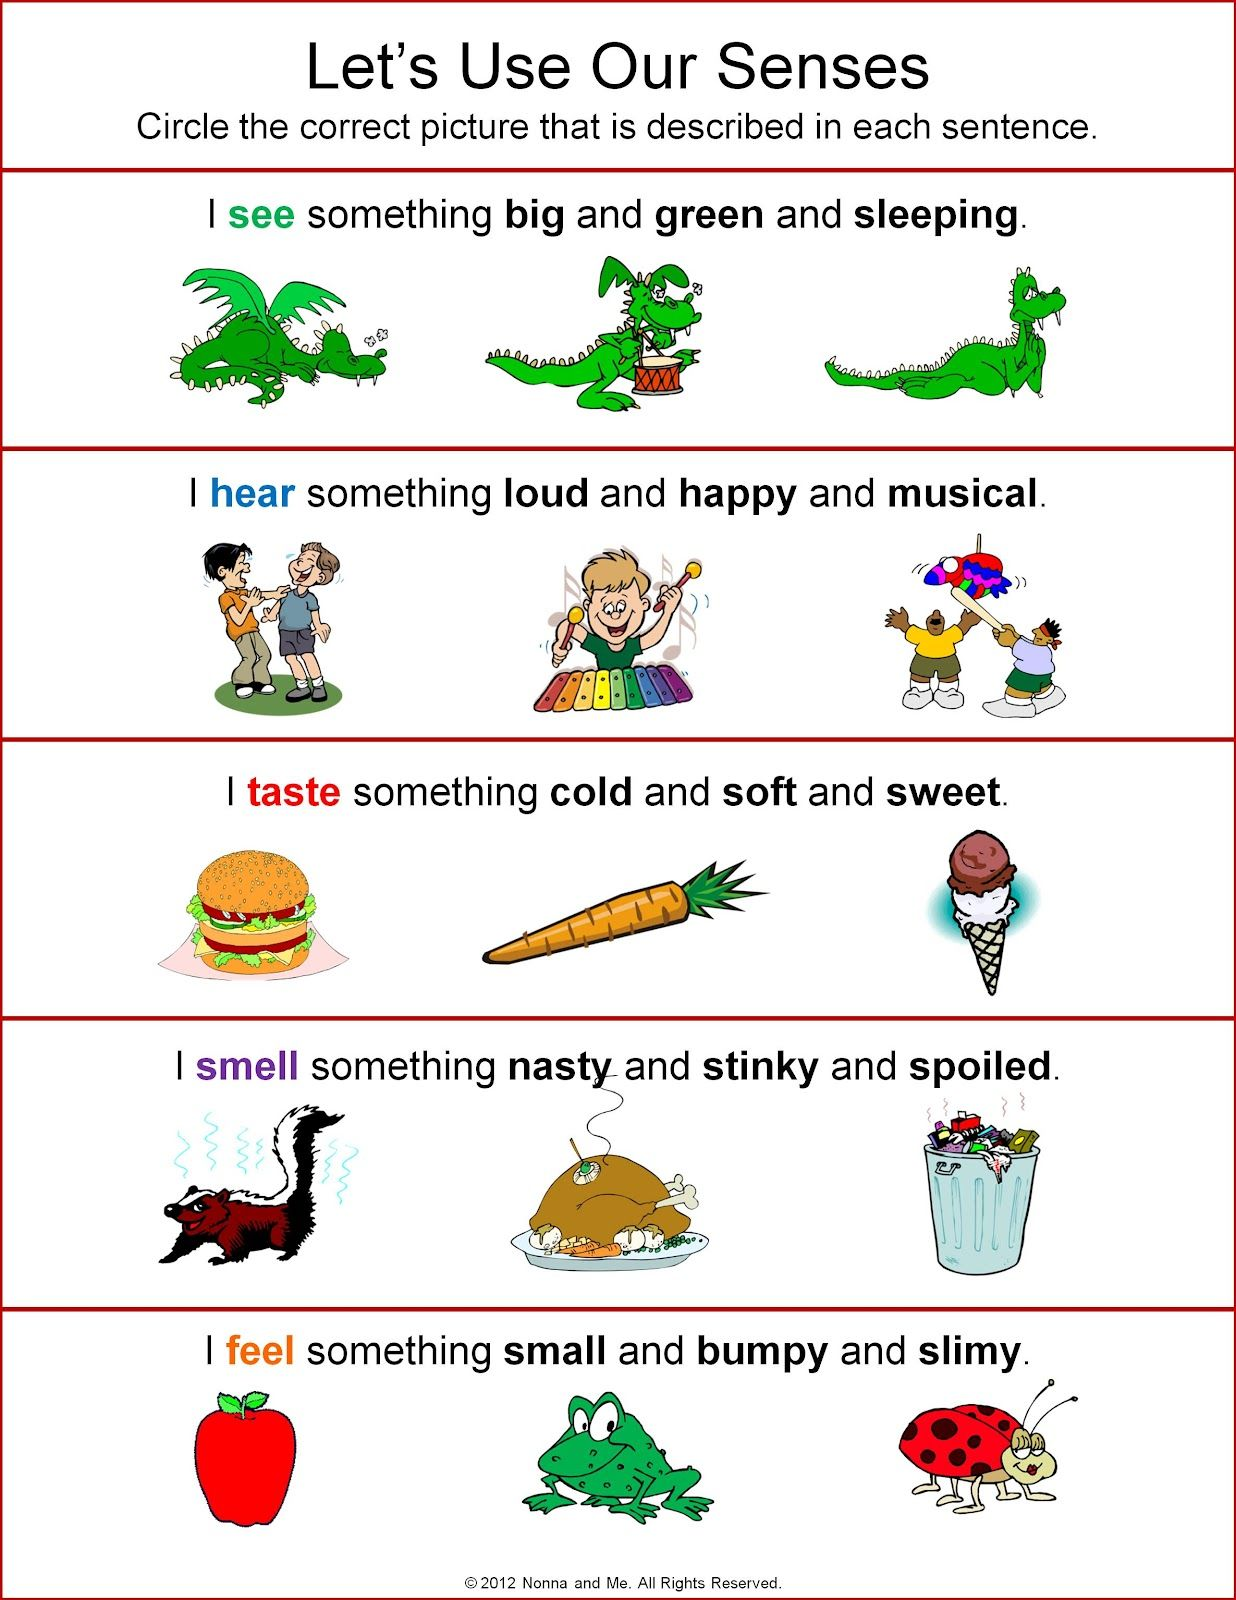 Our Five Senses Worksheets | Posted by Sandi Zobrest ("|1236|1600|?|117434cb6a2904fbd2746859562fa5a1|False|UNLIKELY|0.3067915141582489